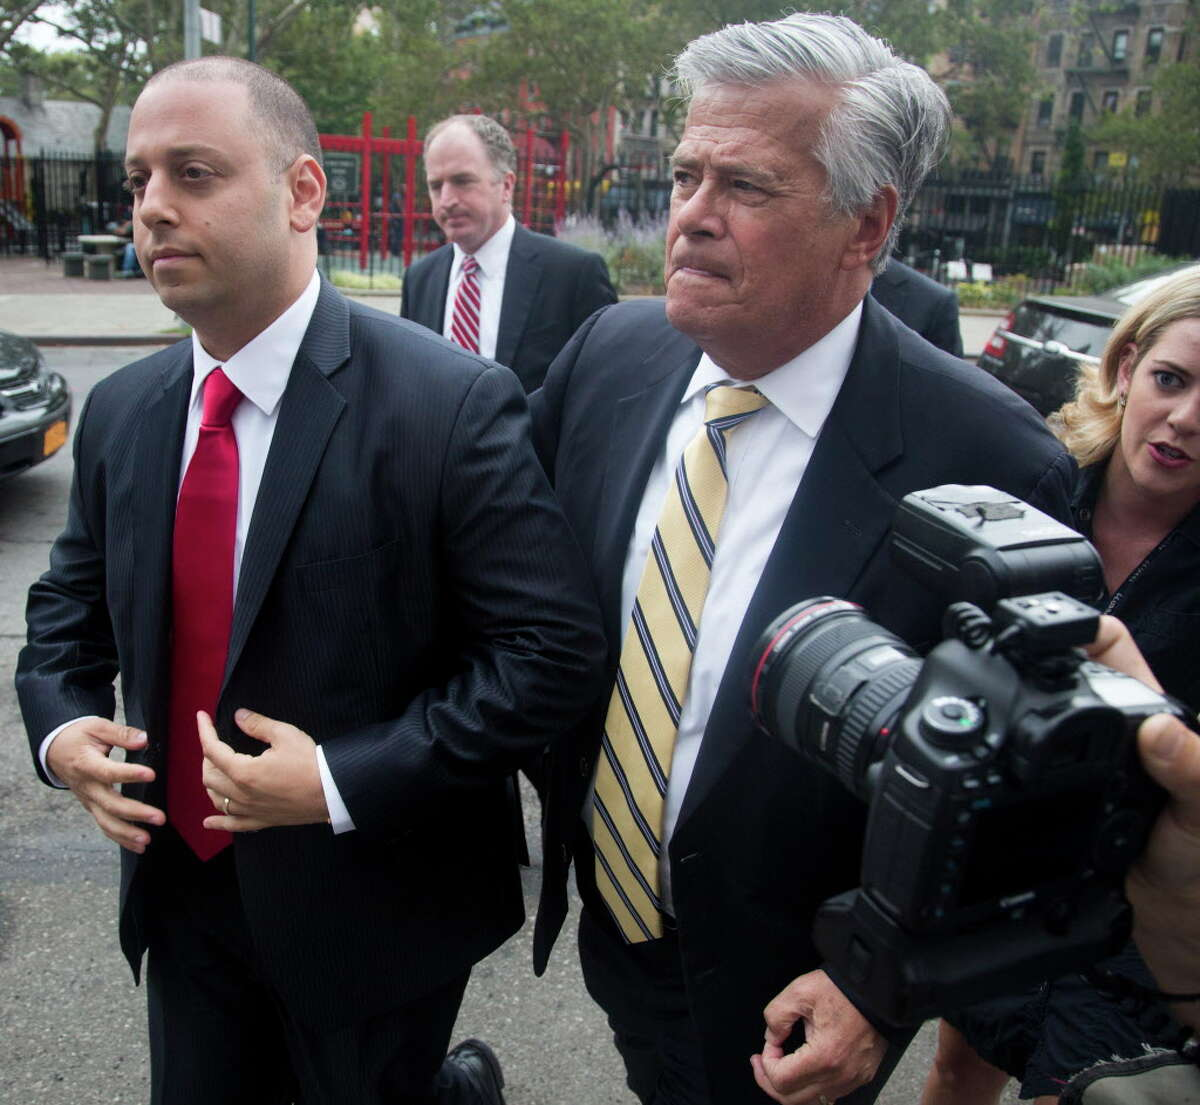 Former New York state Senate leader Dean Skelos, right, and his son Adam, 33, left, arrive for their arraignment in Manhattan federal court for the latest charges against them in a corruption case, Thursday, July 30, 2015, in New York. (AP Photo/Bebeto Matthews) ORG XMIT: NYBM101